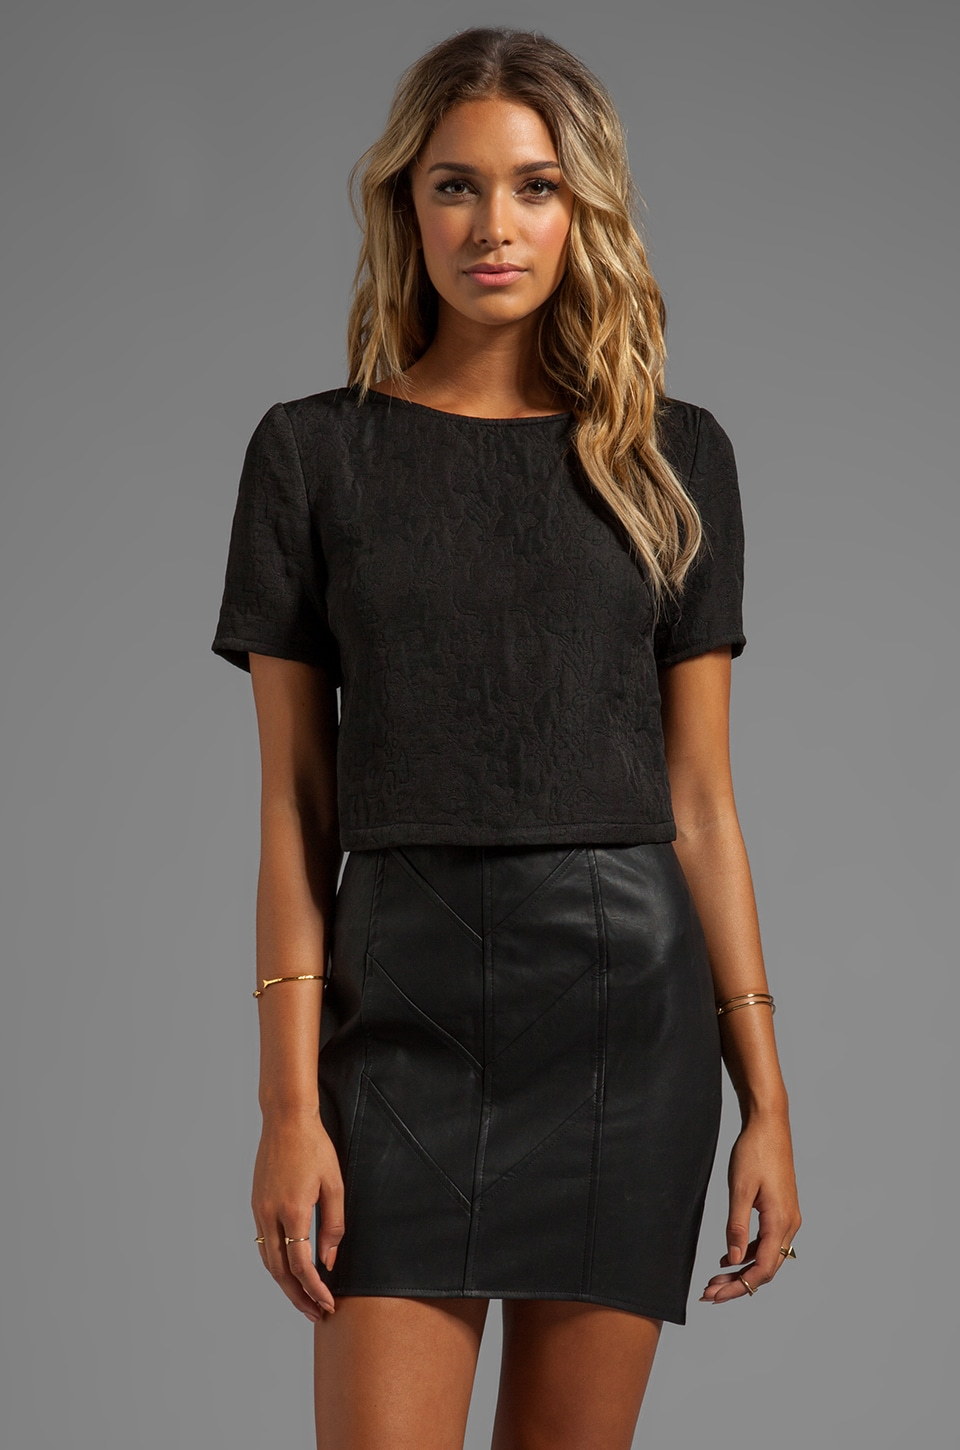 Finders Keepers Somerset Top in Black